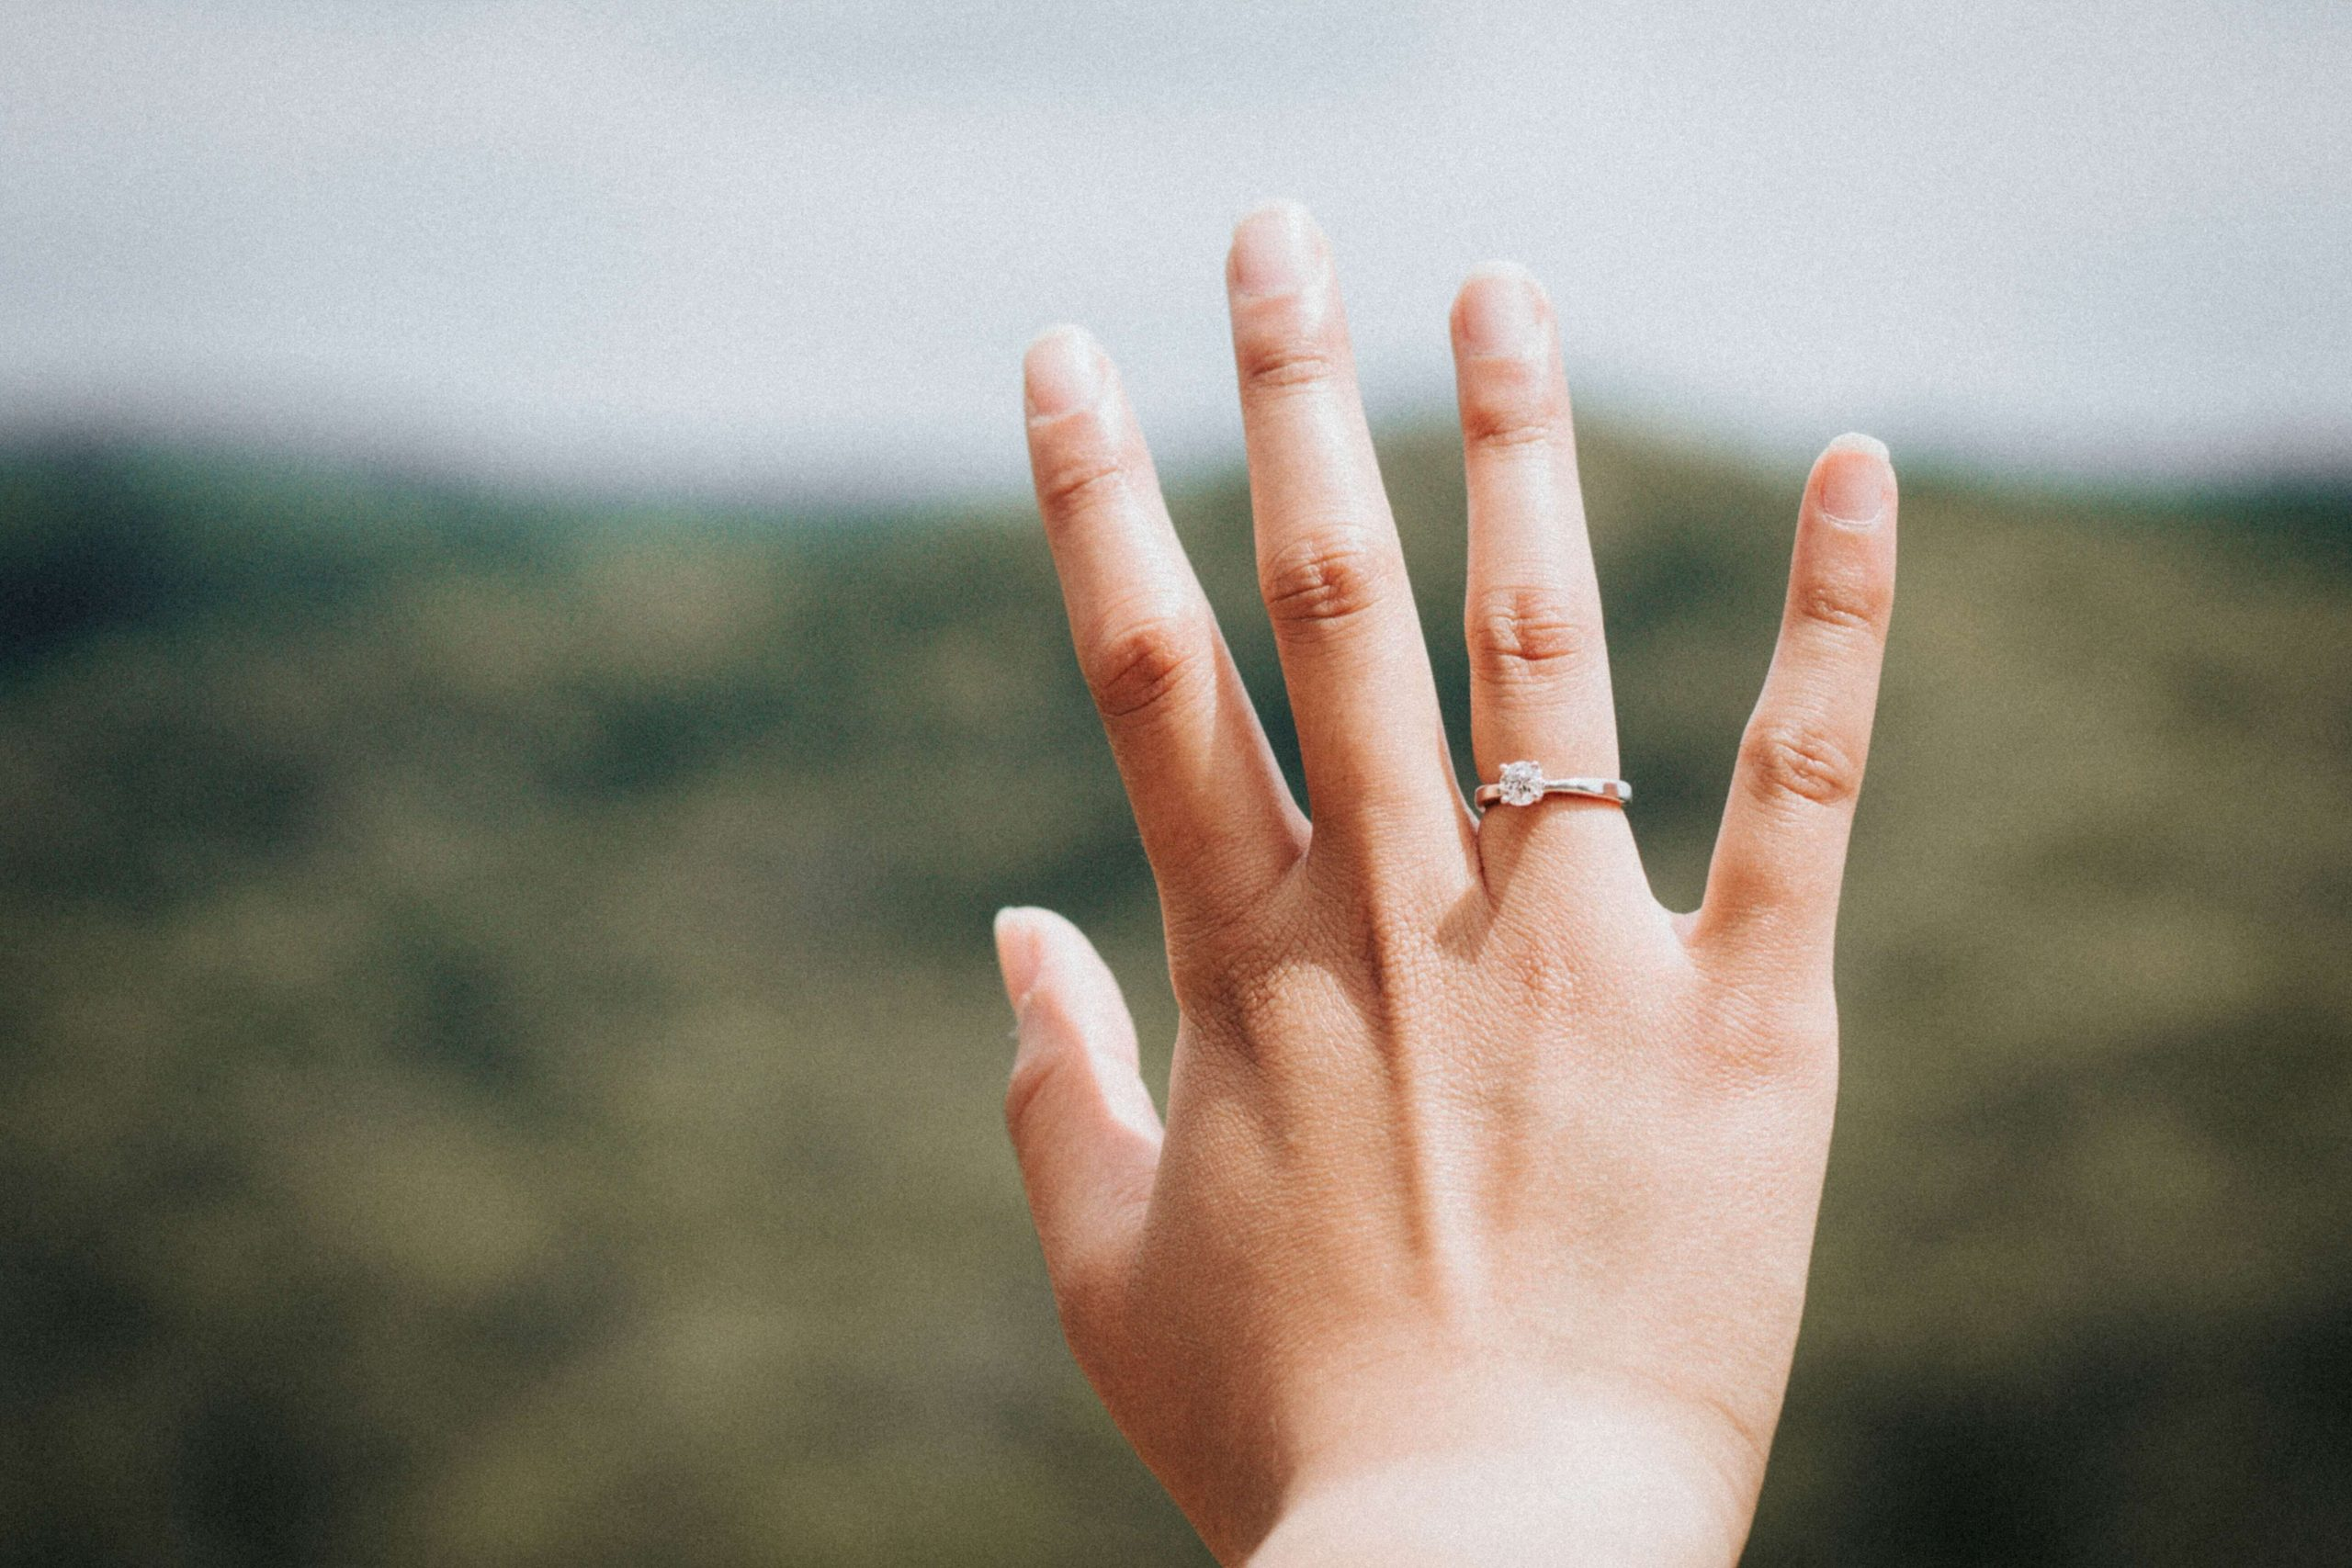 Read more about the article Right Hand Diamond Ring | Find Out Why You Need One with our 5 minute guide